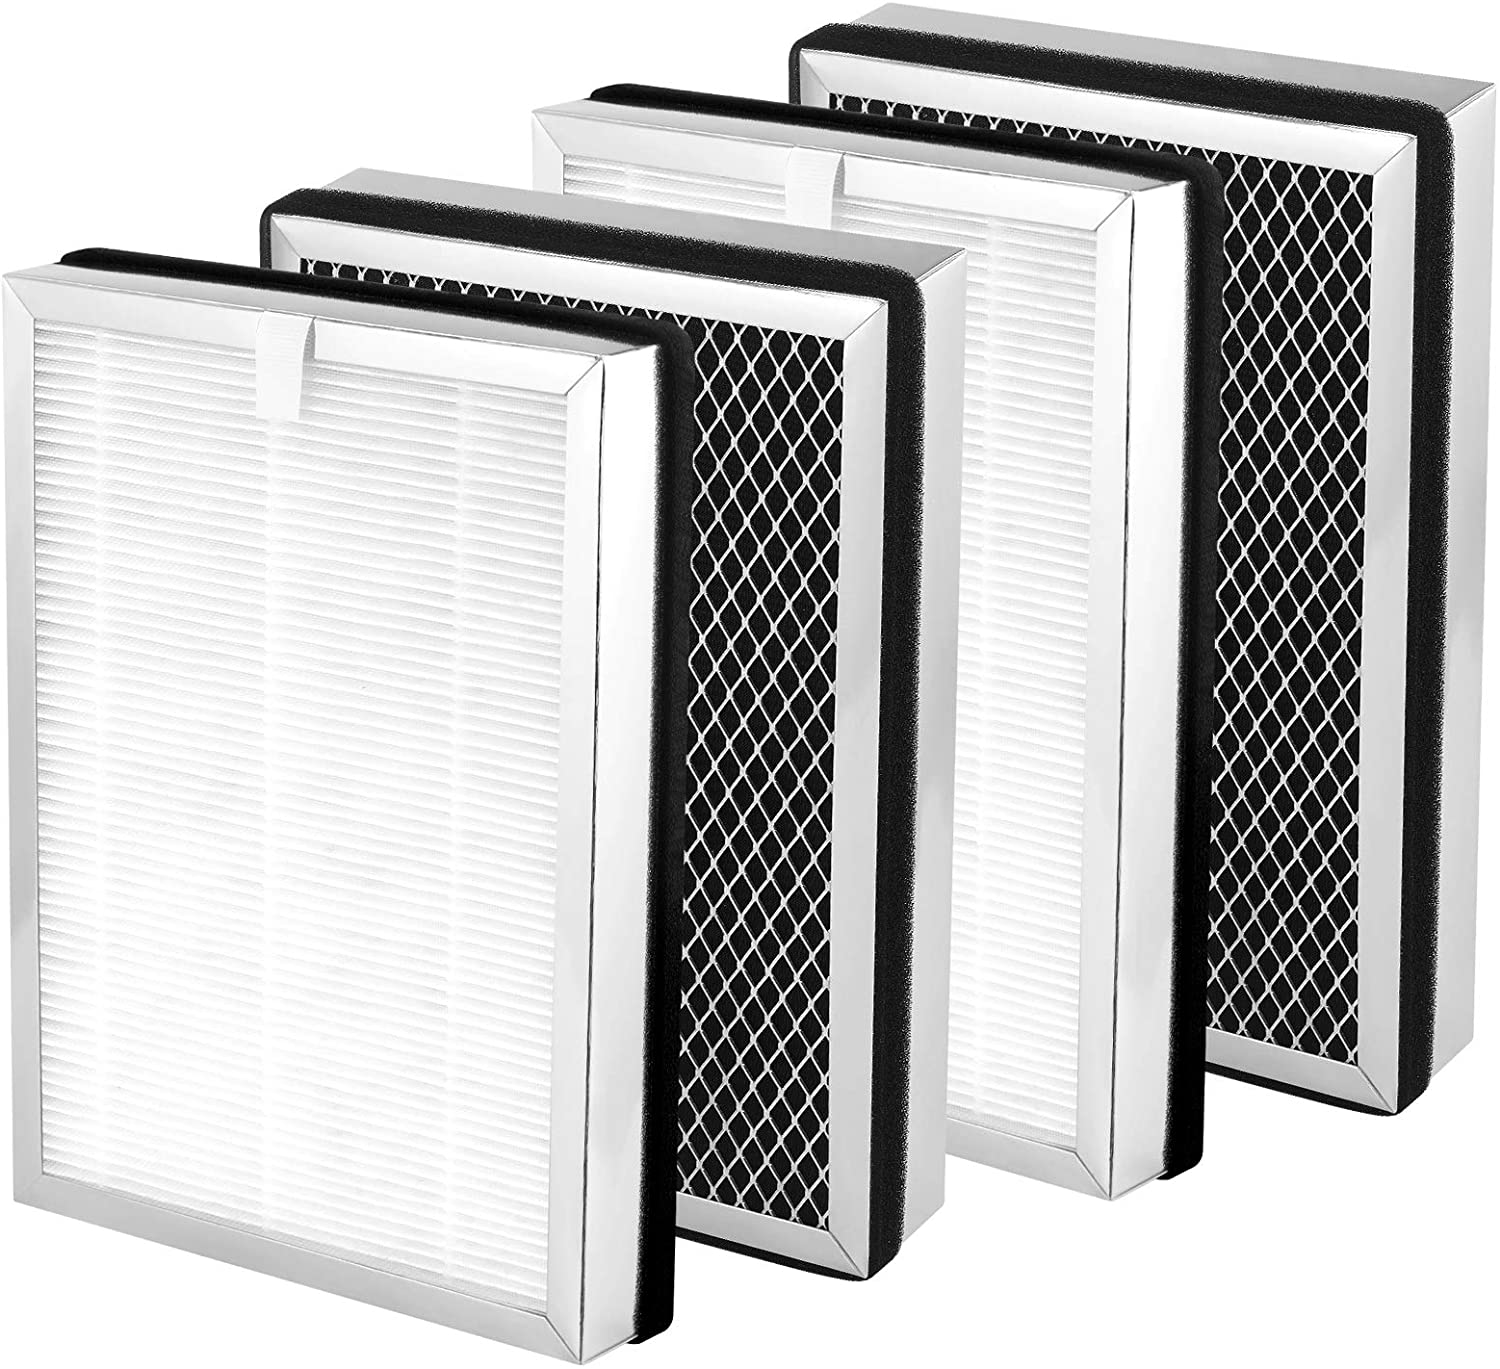 A demonstration of four Afloia HEPA filters. At the front they look white like folded paper, the back side of HEPA filters is reticulated black.